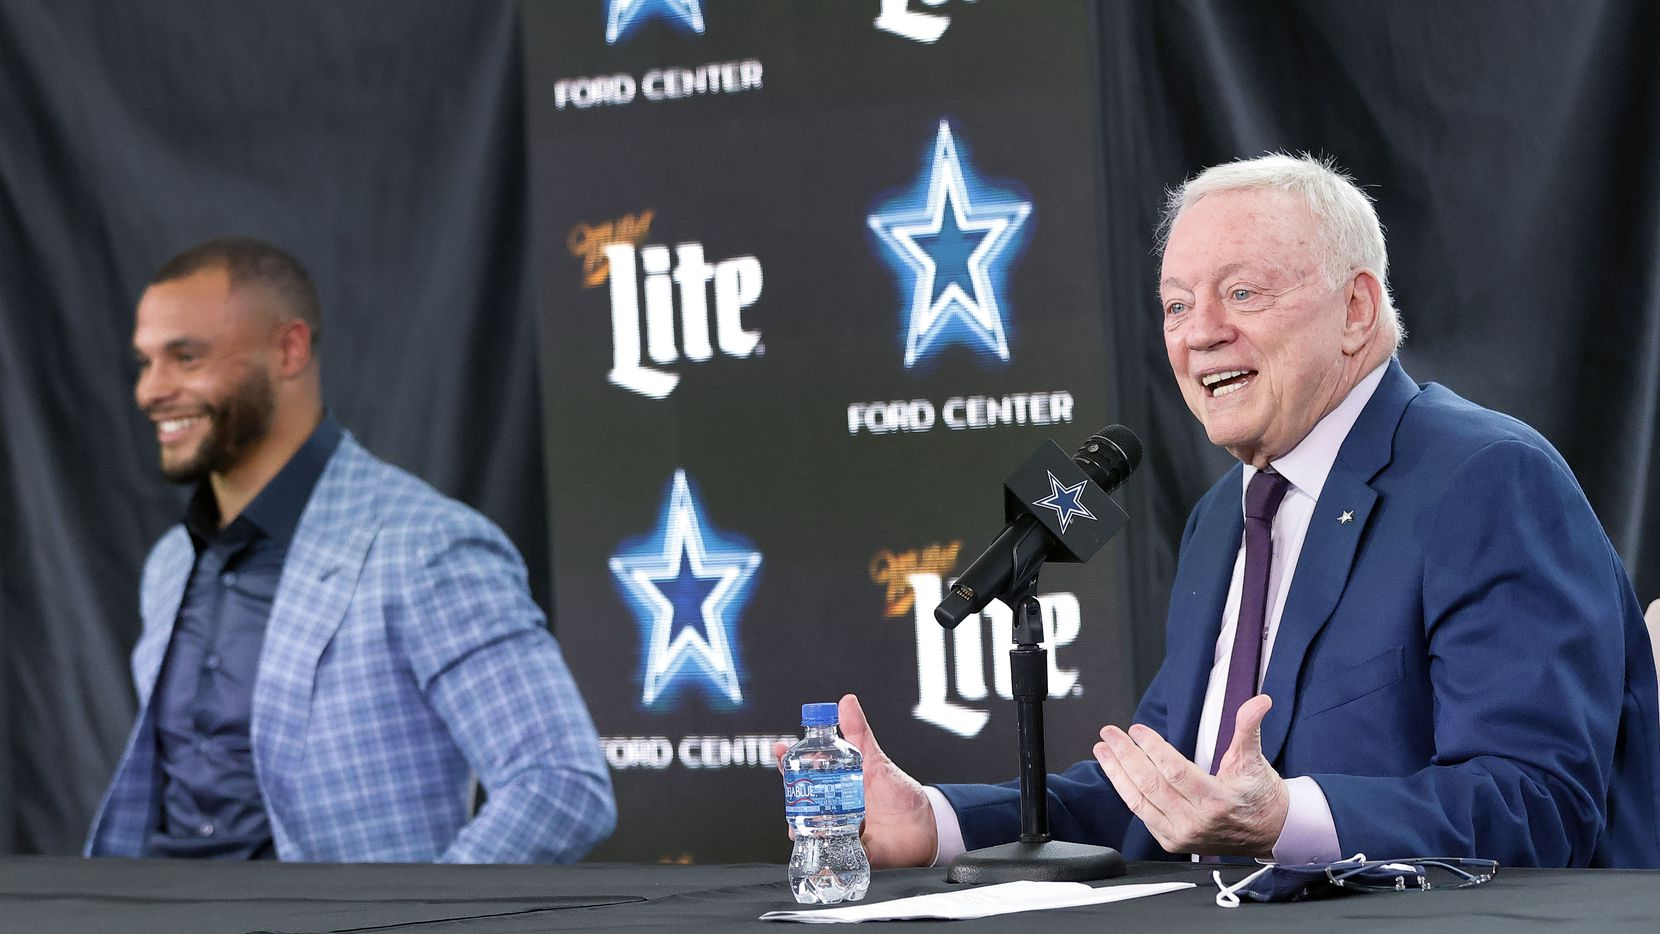 Dallas Cowboys owner Jerry Jones speaks about the signing of quarterback Dak Prescott (left) who laughs during his press conference at The Star in Frisco, Texas, Wednesday, March 10, 2021.